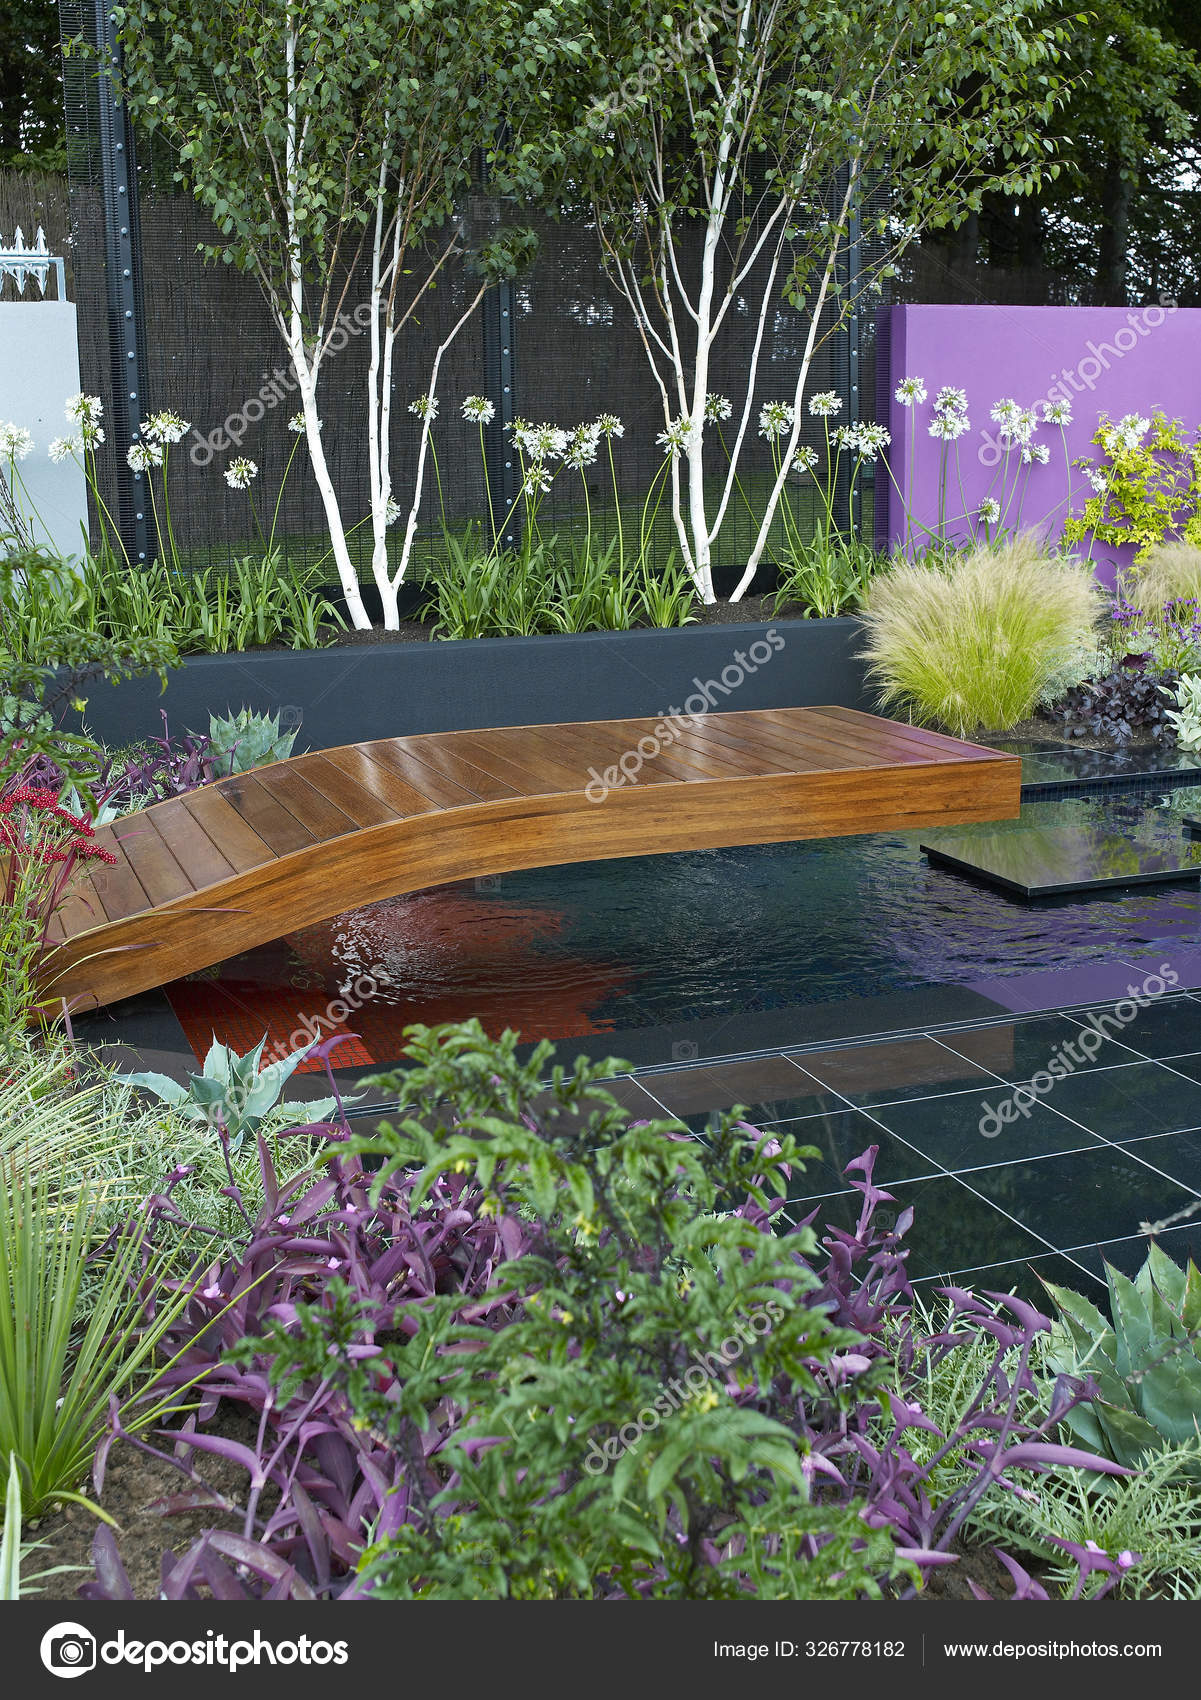 A colourful modern garden design with a range of flowers, plants and  shrubs, decking, water and architectural features 9